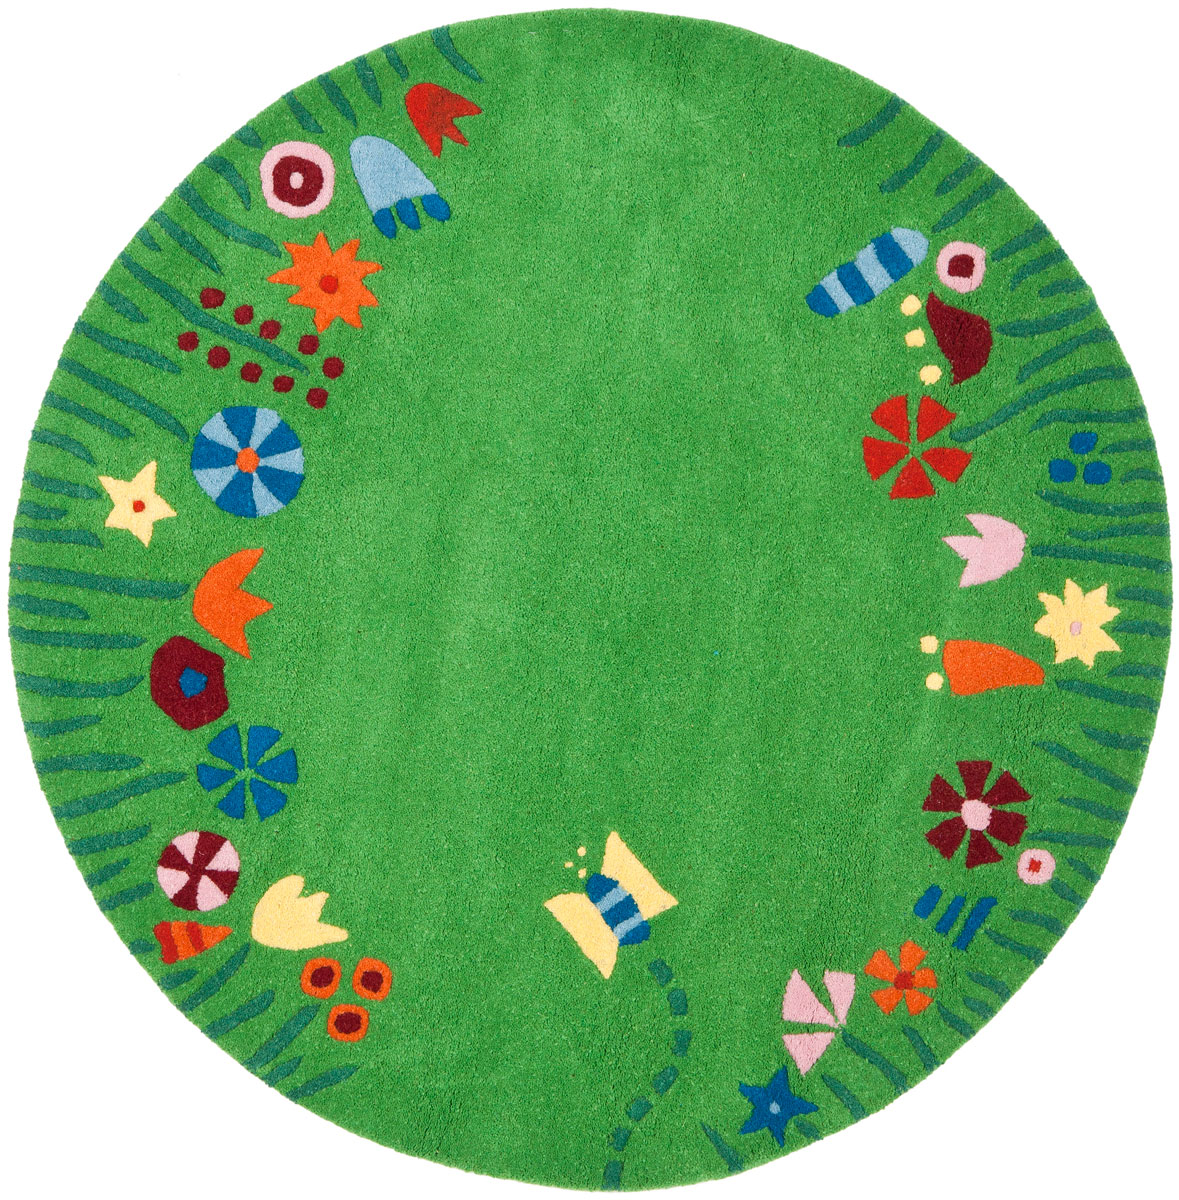 Childrens round rugs rugs ideas for Round rugs for kids